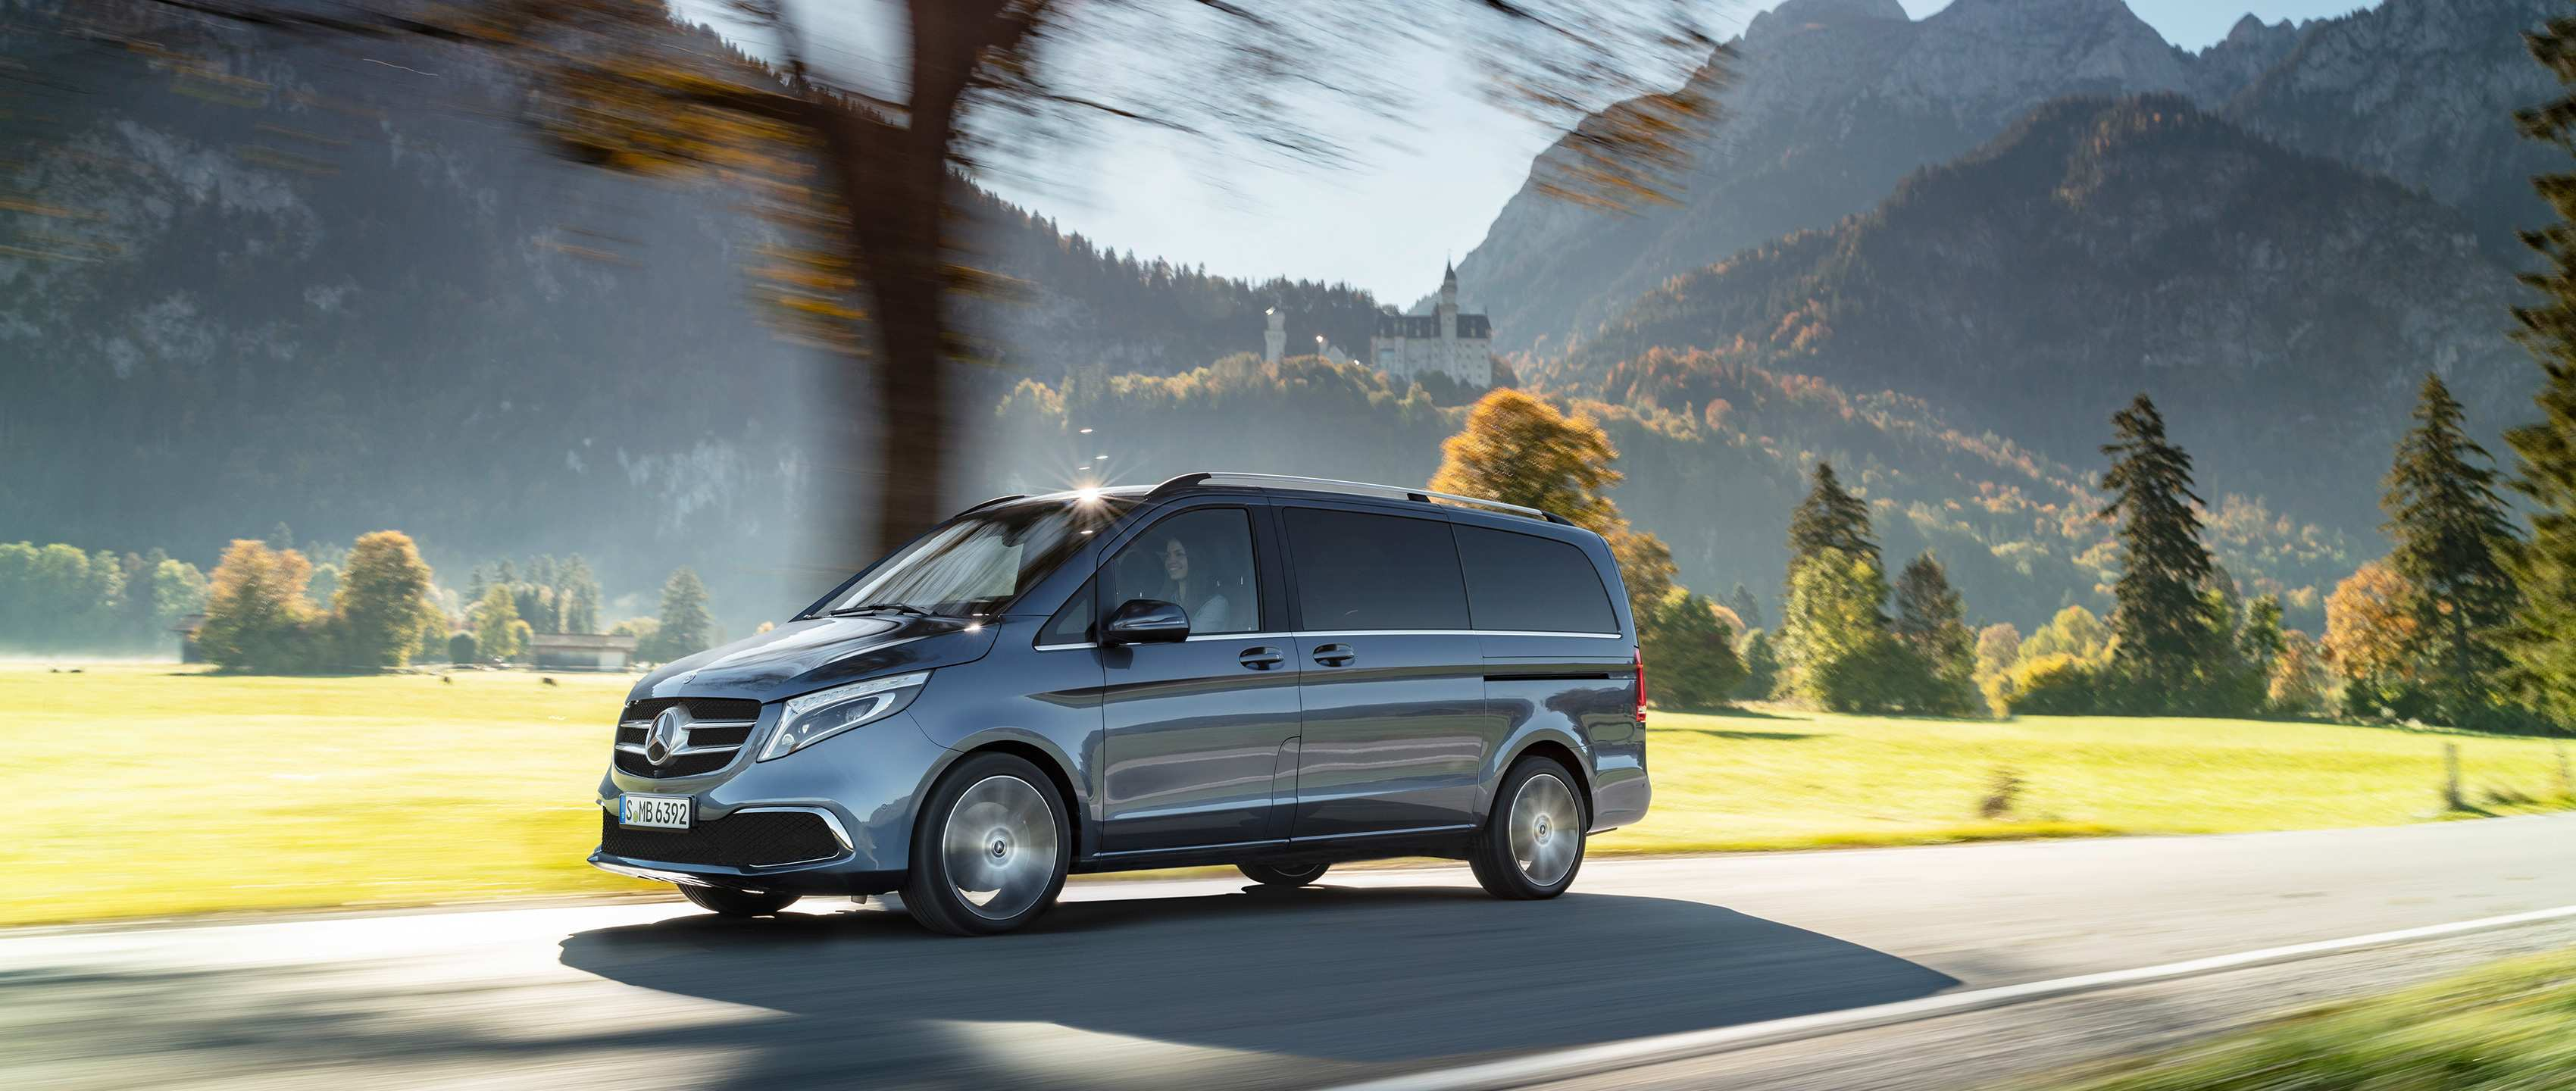 77 Best Review Mercedes V Klasse 2019 Price and Review for Mercedes V Klasse 2019